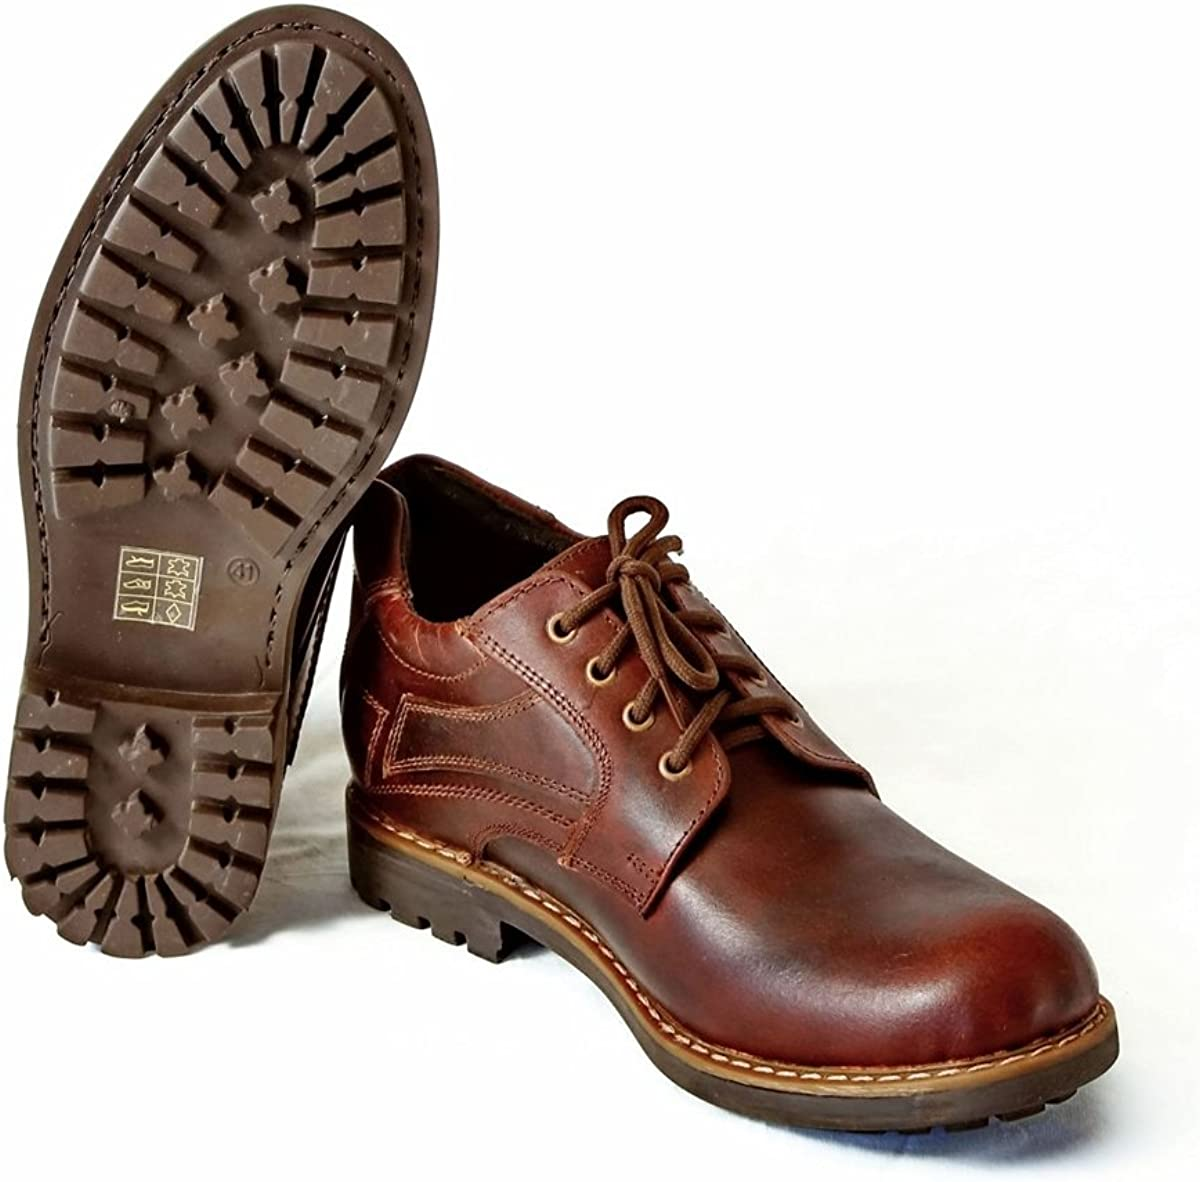 Mens Shoes Brown Outdoor Hiking Leather